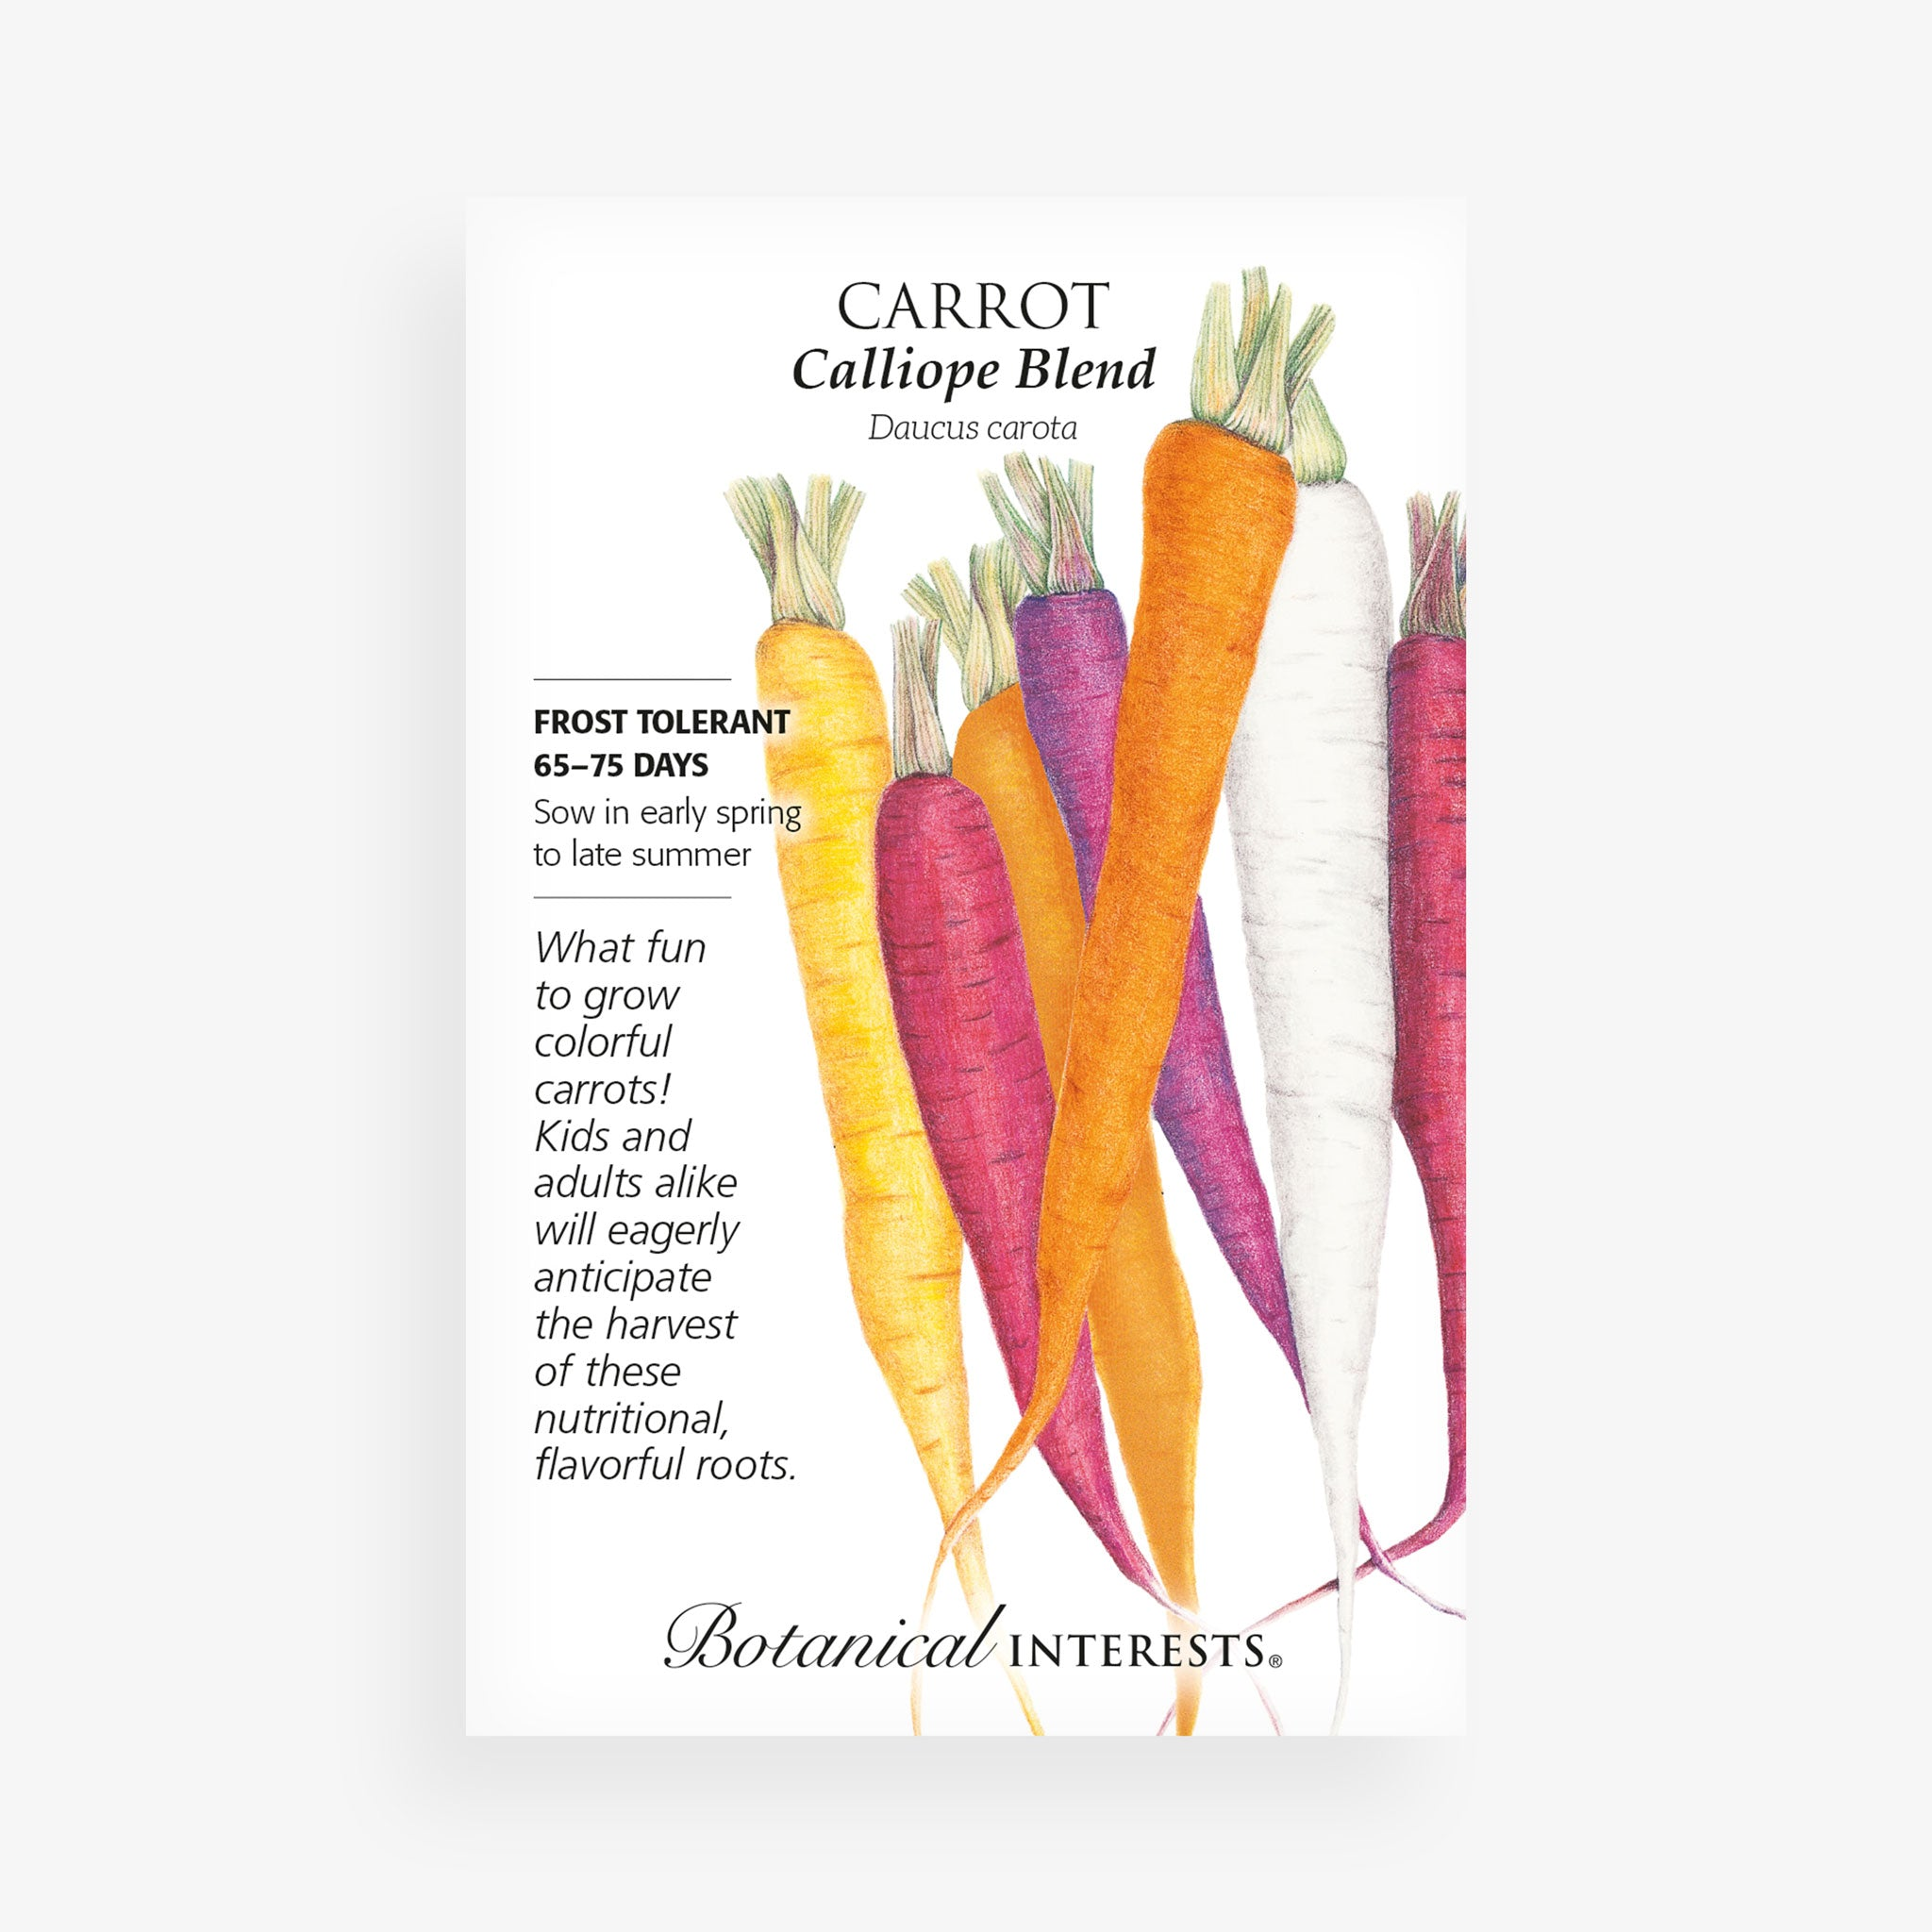 'Calliope Blend' Carrot Seed Packet